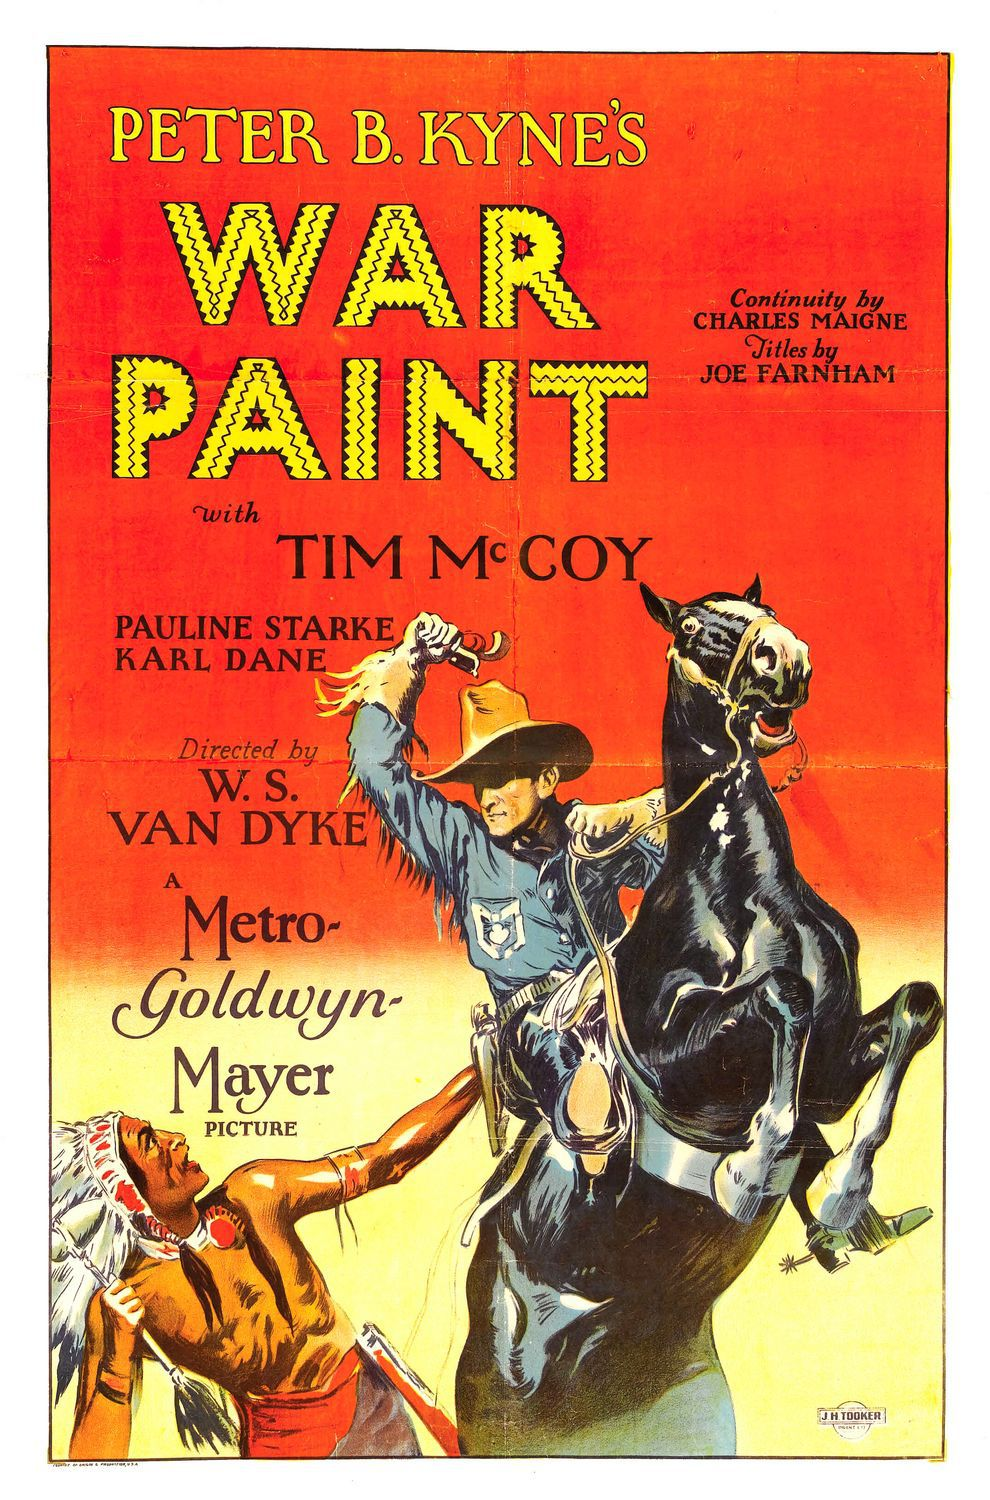 War Paint (1926) - Cast: Tim McCoy, Pauline Starke, Karl Dane, Charles K. French, Chief Yowlachie - classic cult old western film poster